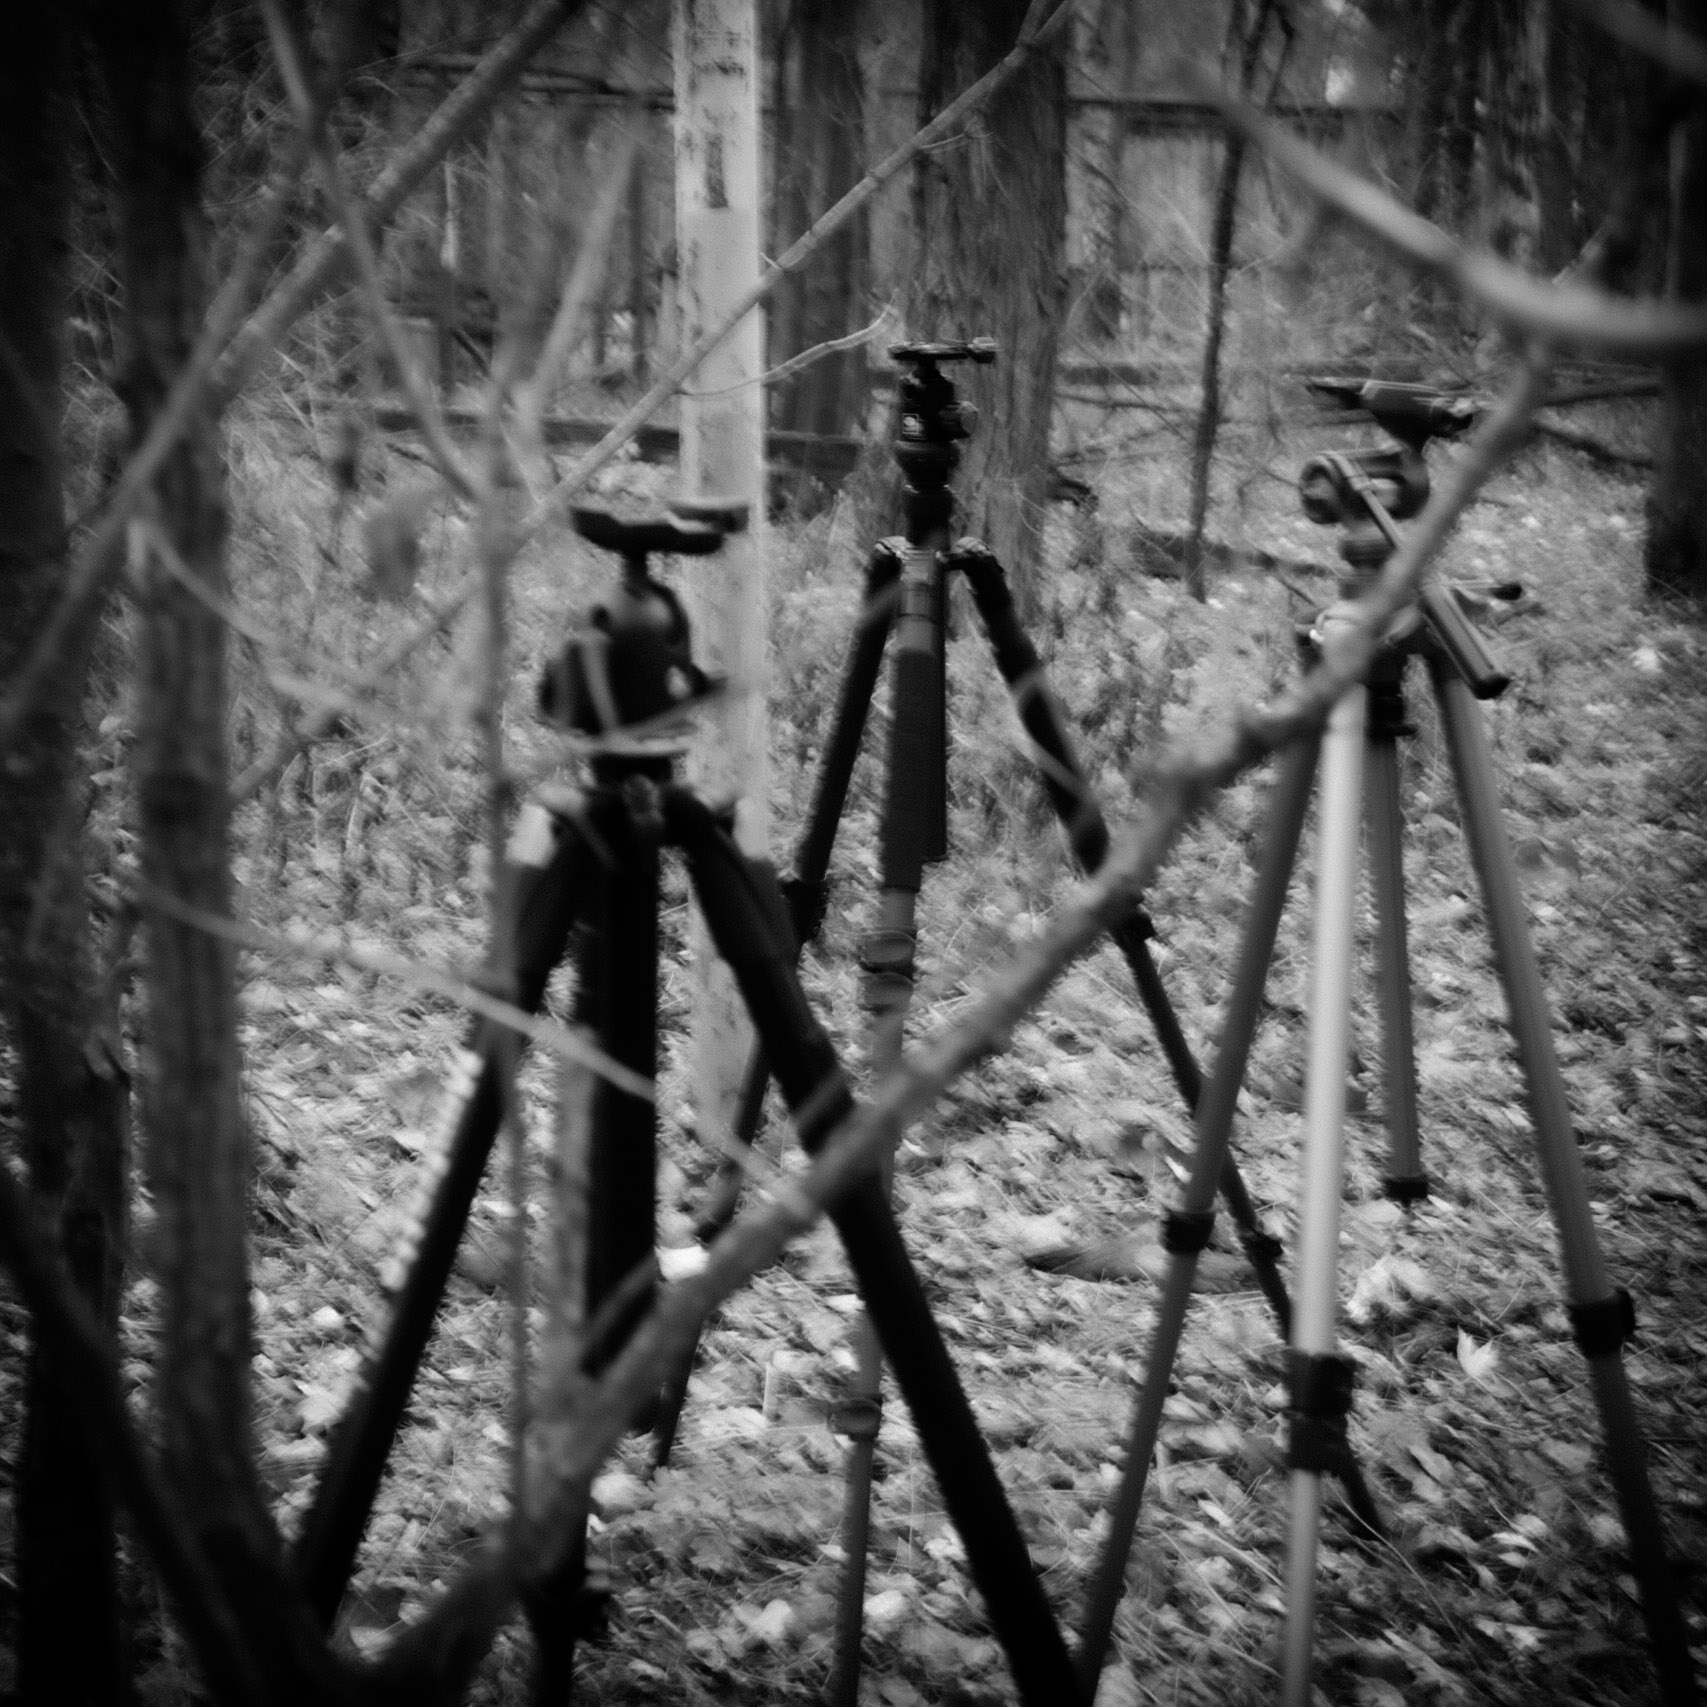 Mistaking the Tripods for the Trees